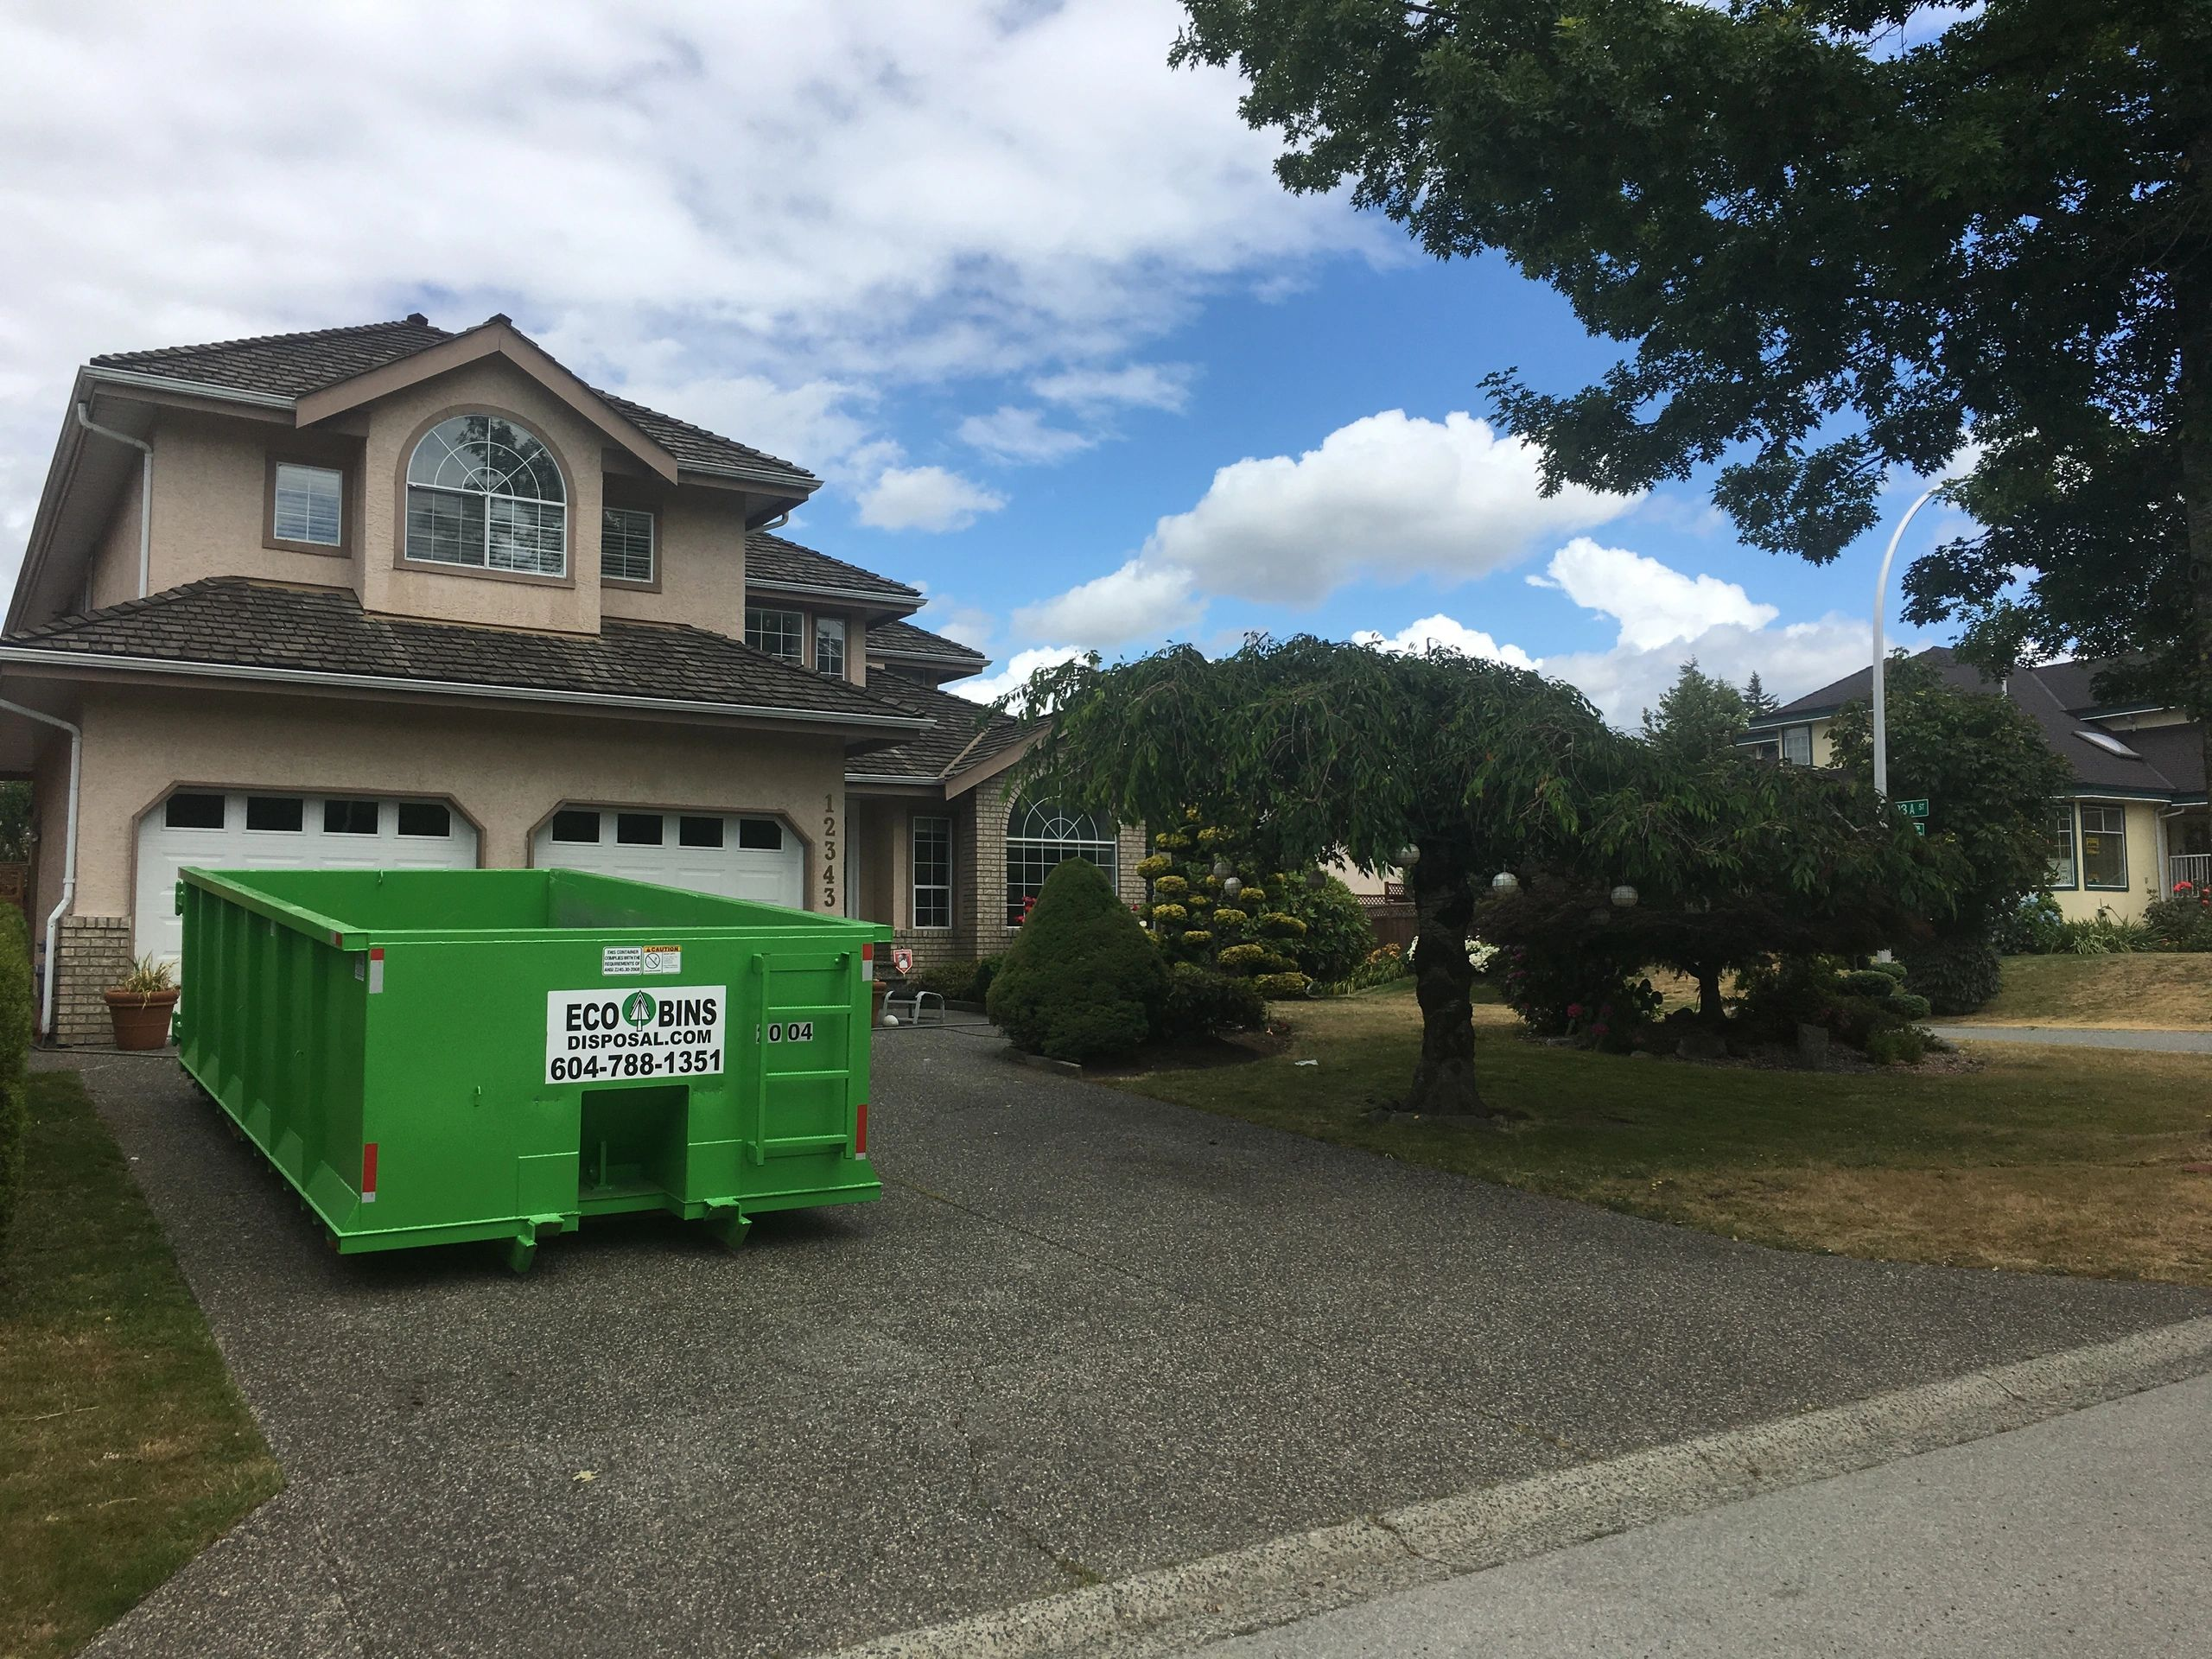 20 yard Bin rental in Surrey Junk removal in White Rock Estate Clean outs in South Surrey